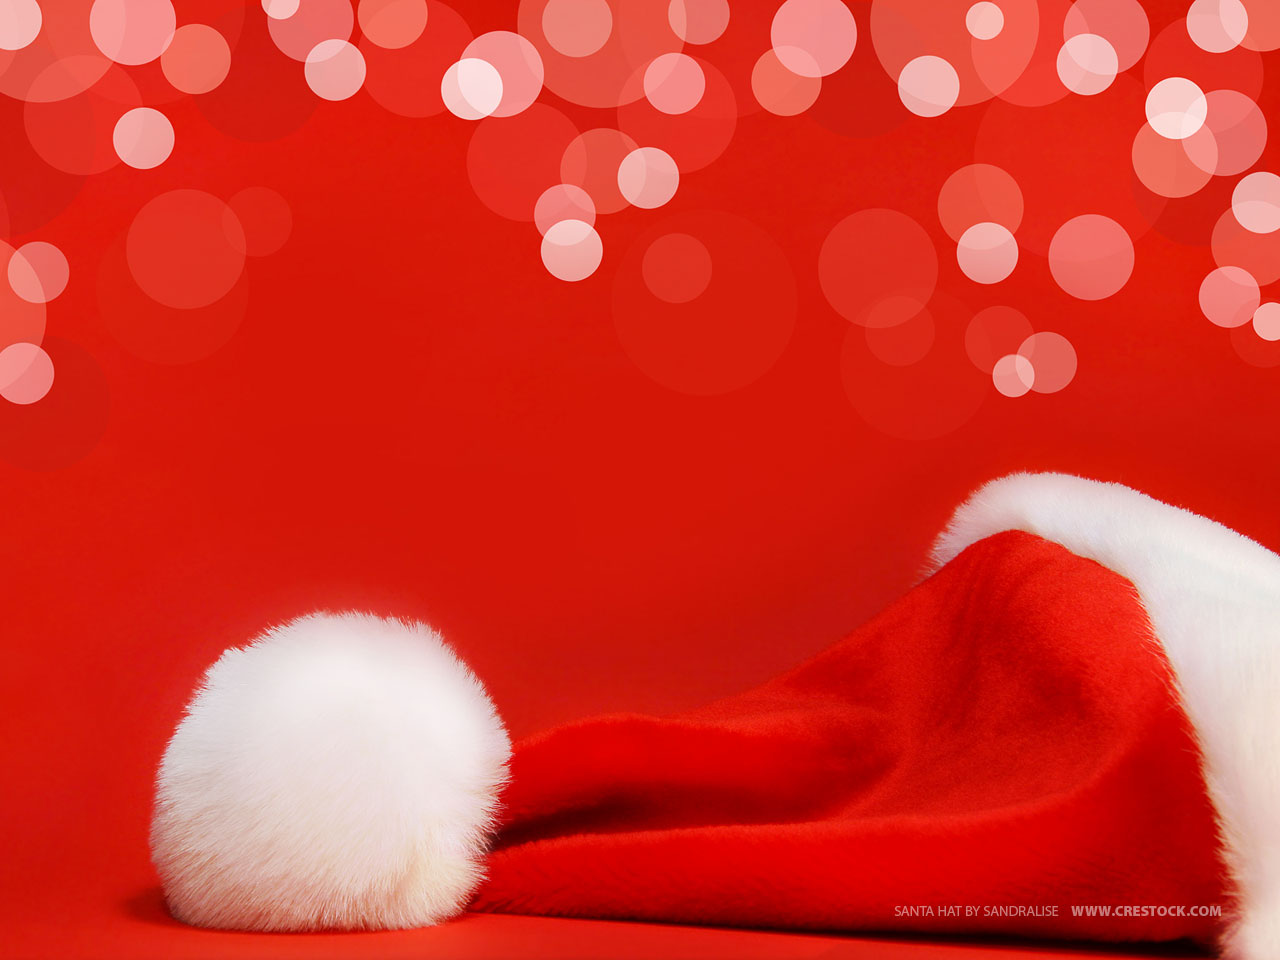 santa hat christmas powerpoint backgrounds red 883404 hd wallpaper backgrounds download itl cat